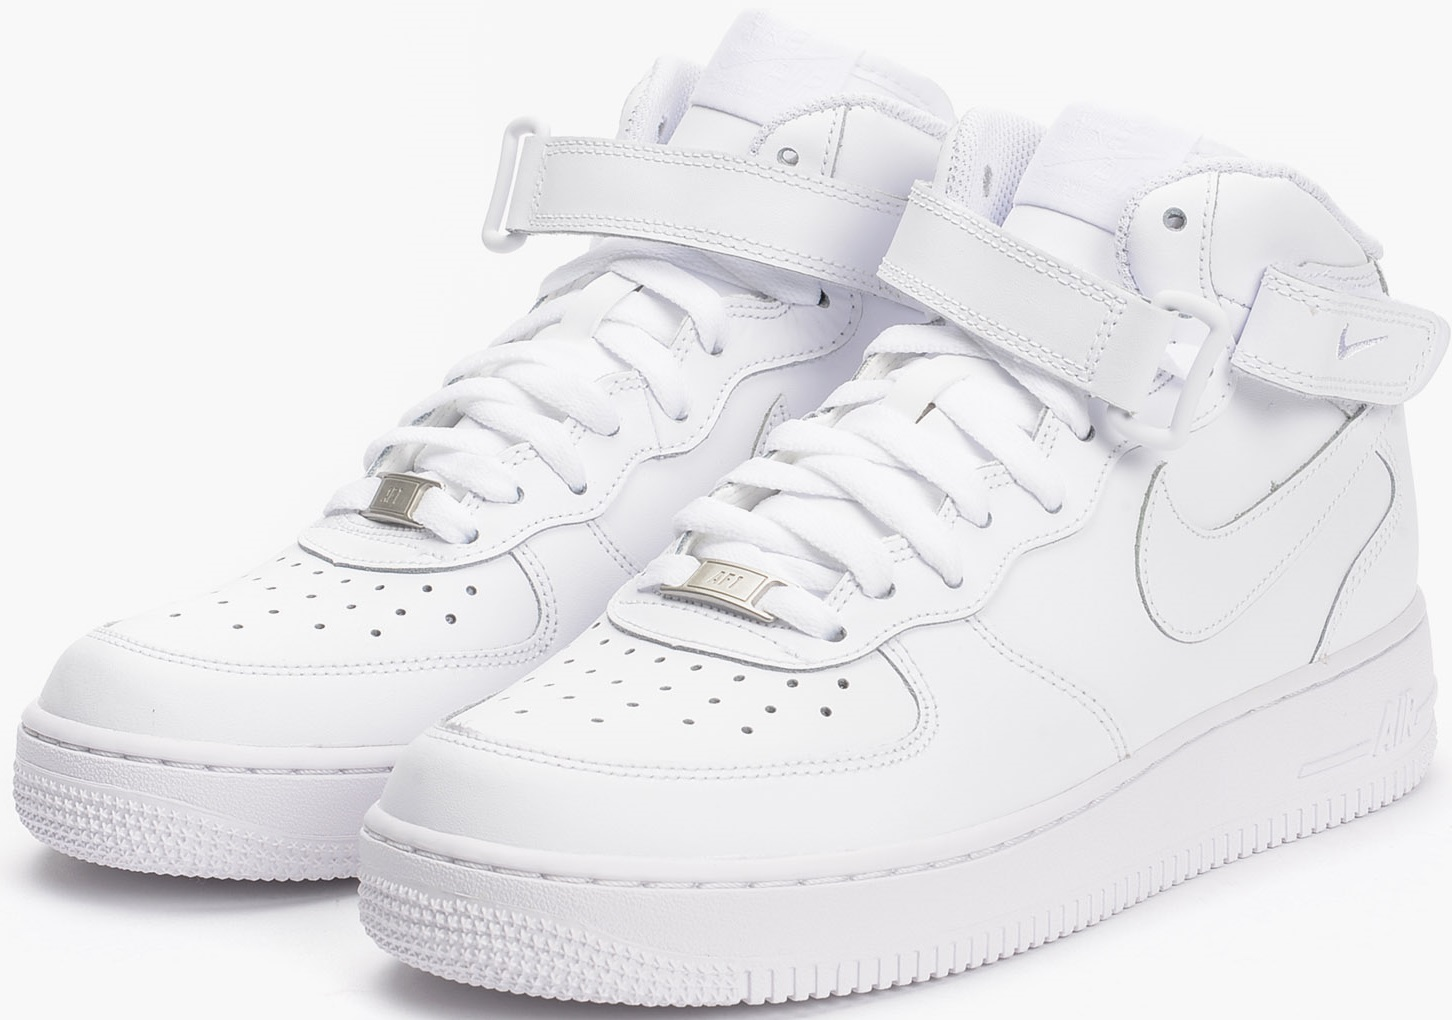 Nike Air Force 1 Mid buty 314195 113 37,5 PROMO